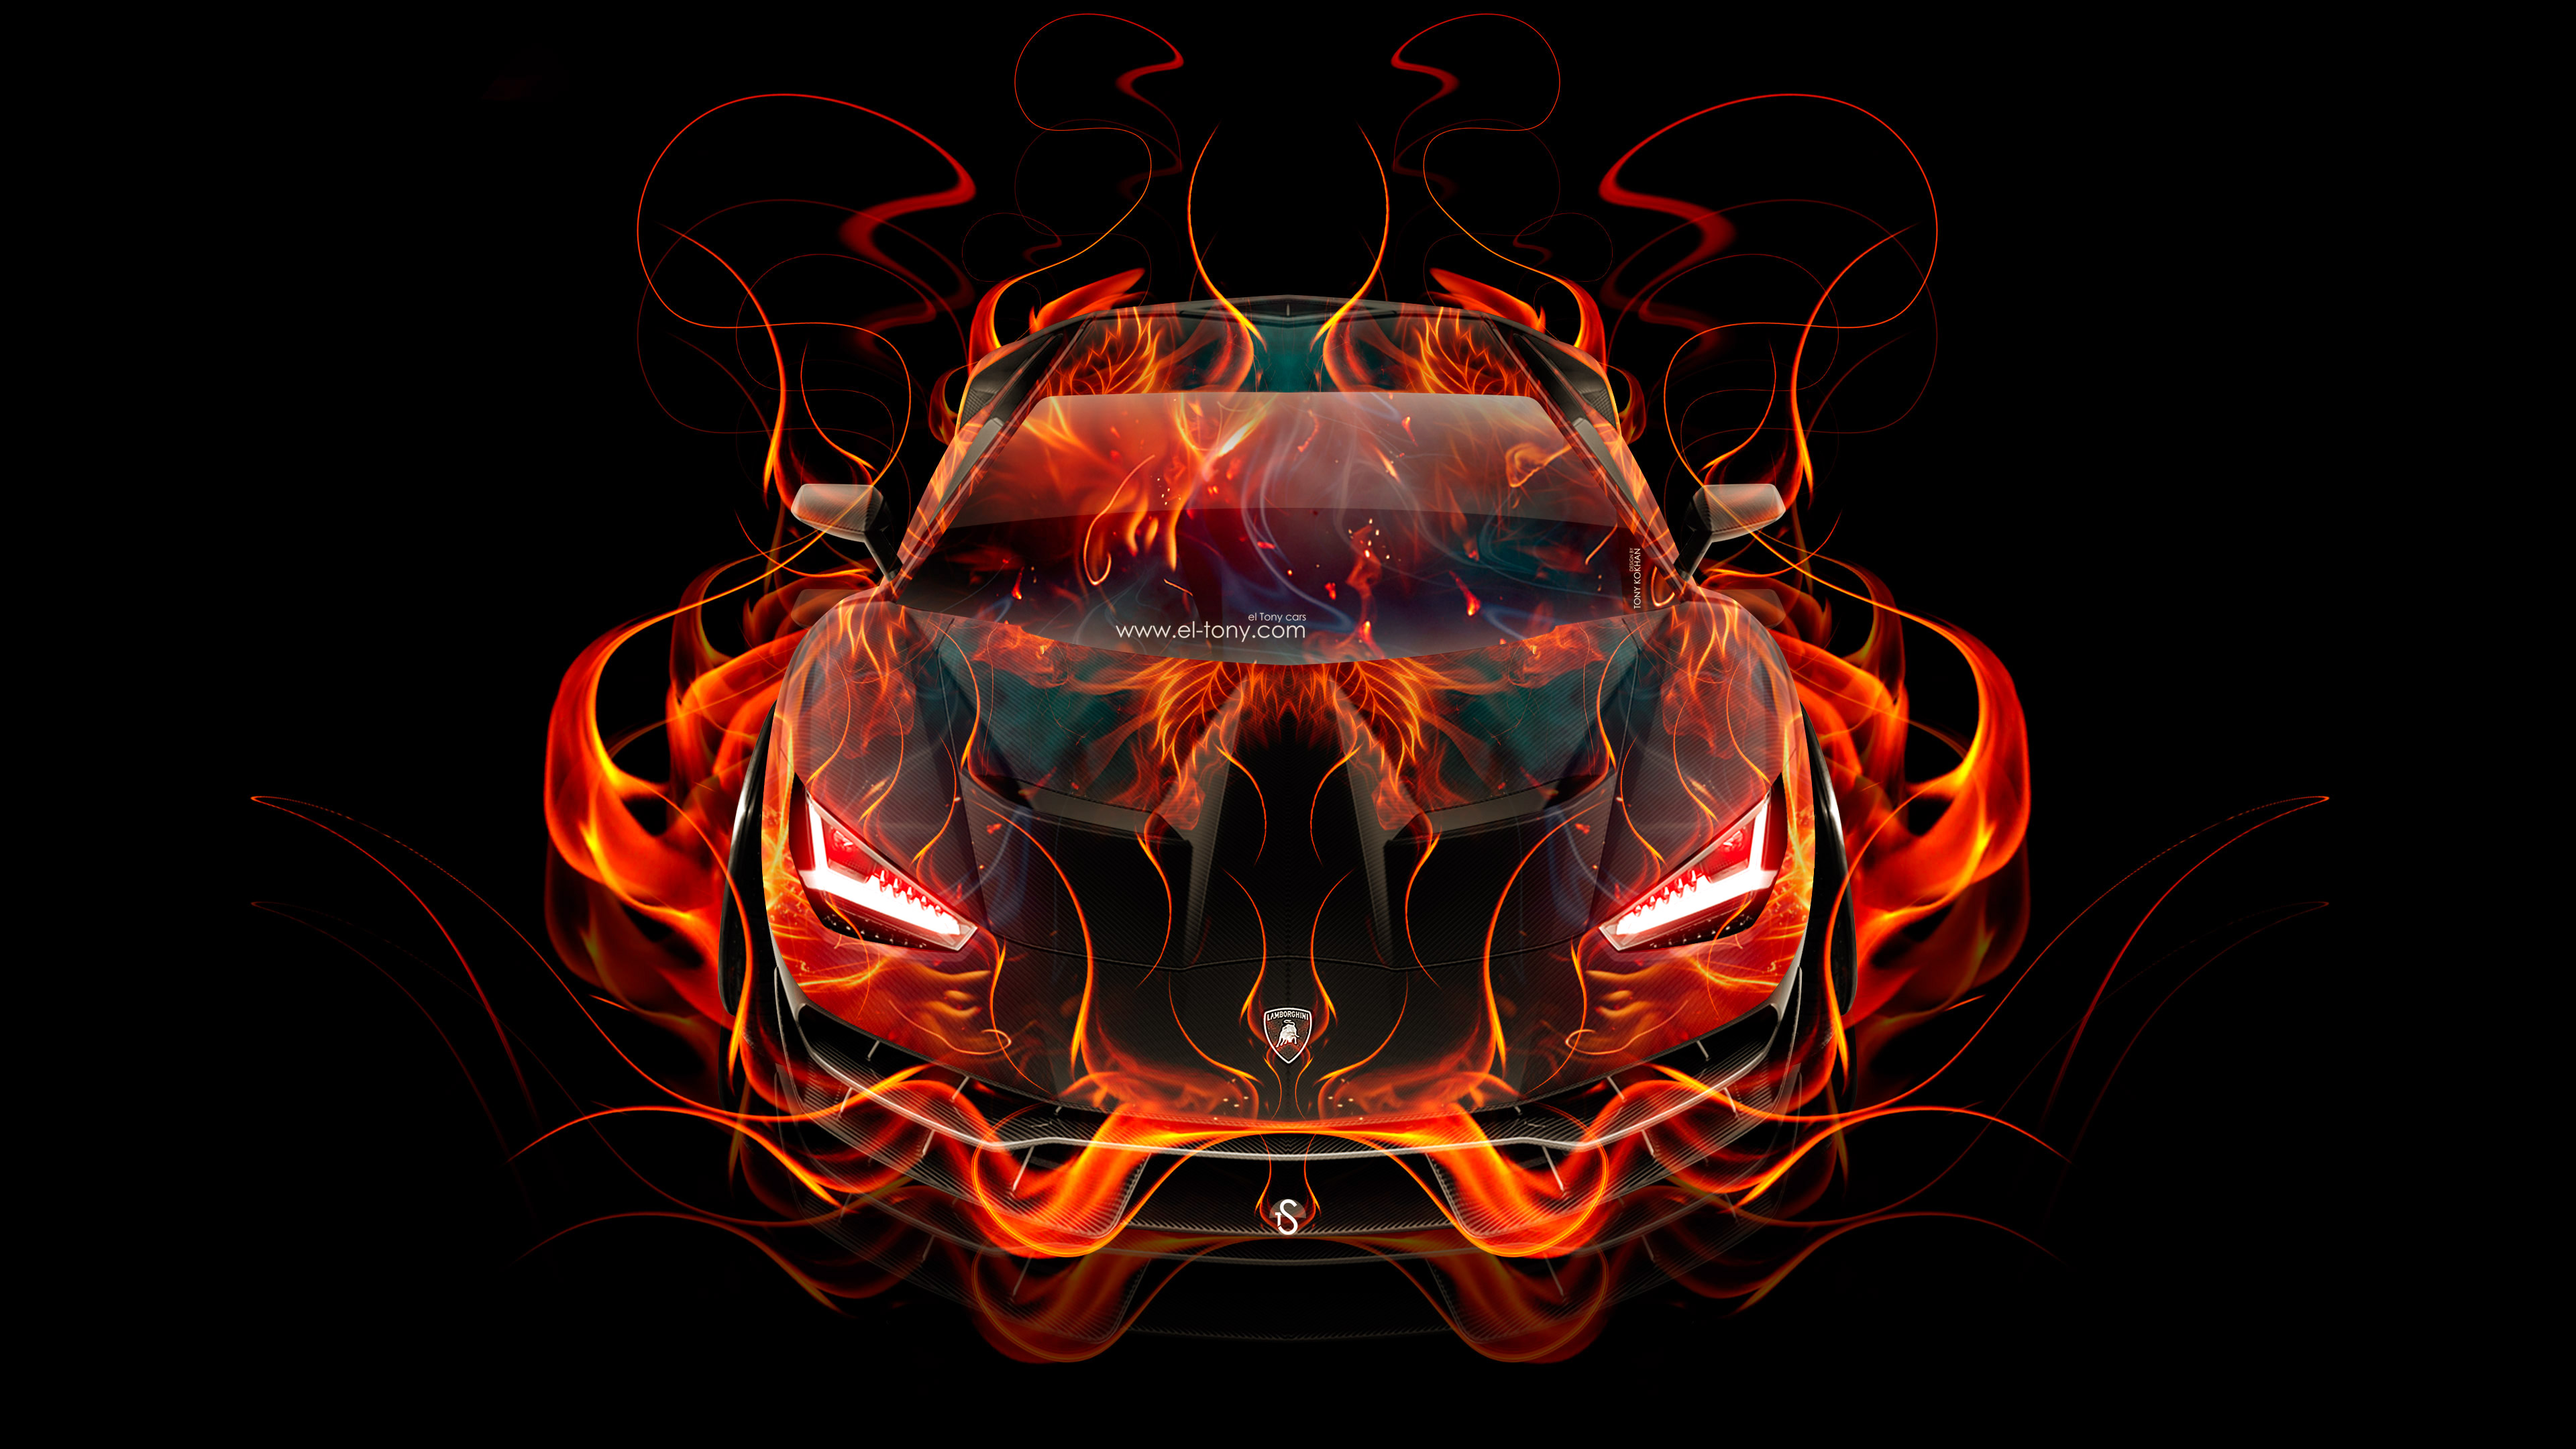 Exceptionnel Lamborghini Centenario FrontUp Super Fire Flame Abstract Car